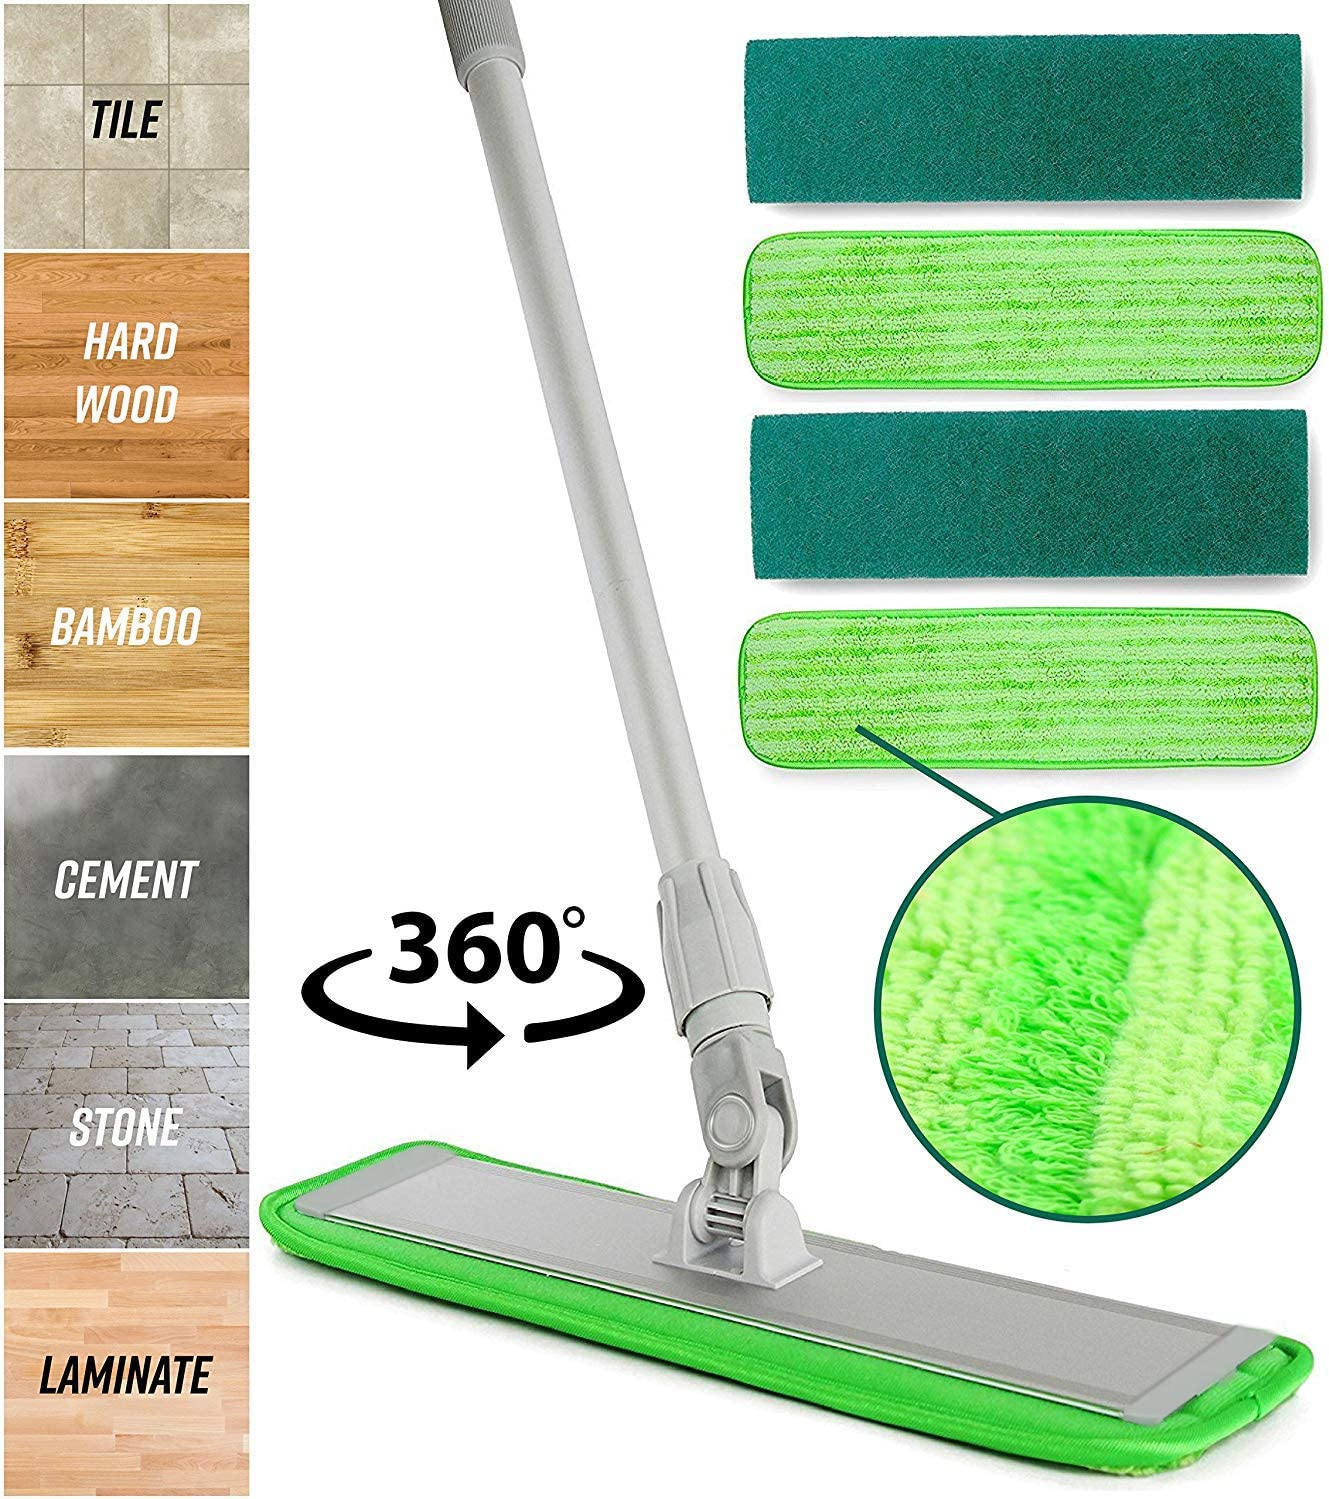 Microfiber-Mop Floor Cleaning System